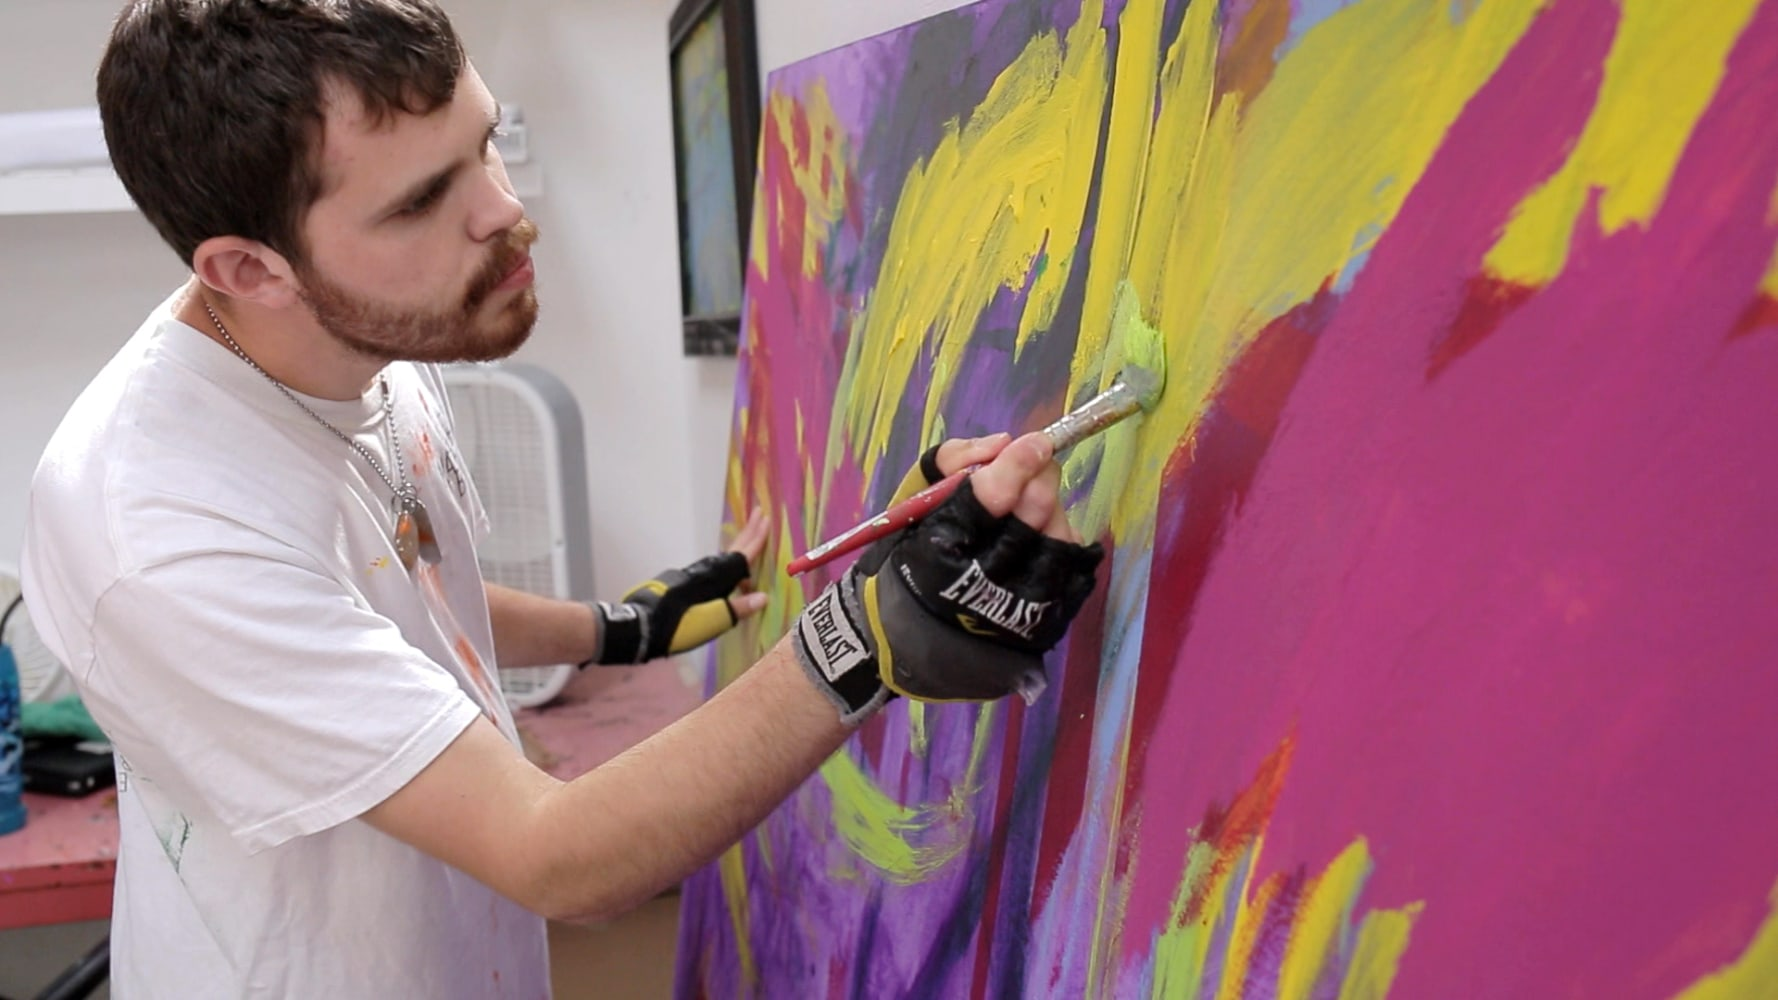 Autistic Artist Shares His World Of Vibrant Colors Nbc News Interiors Inside Ideas Interiors design about Everything [magnanprojects.com]